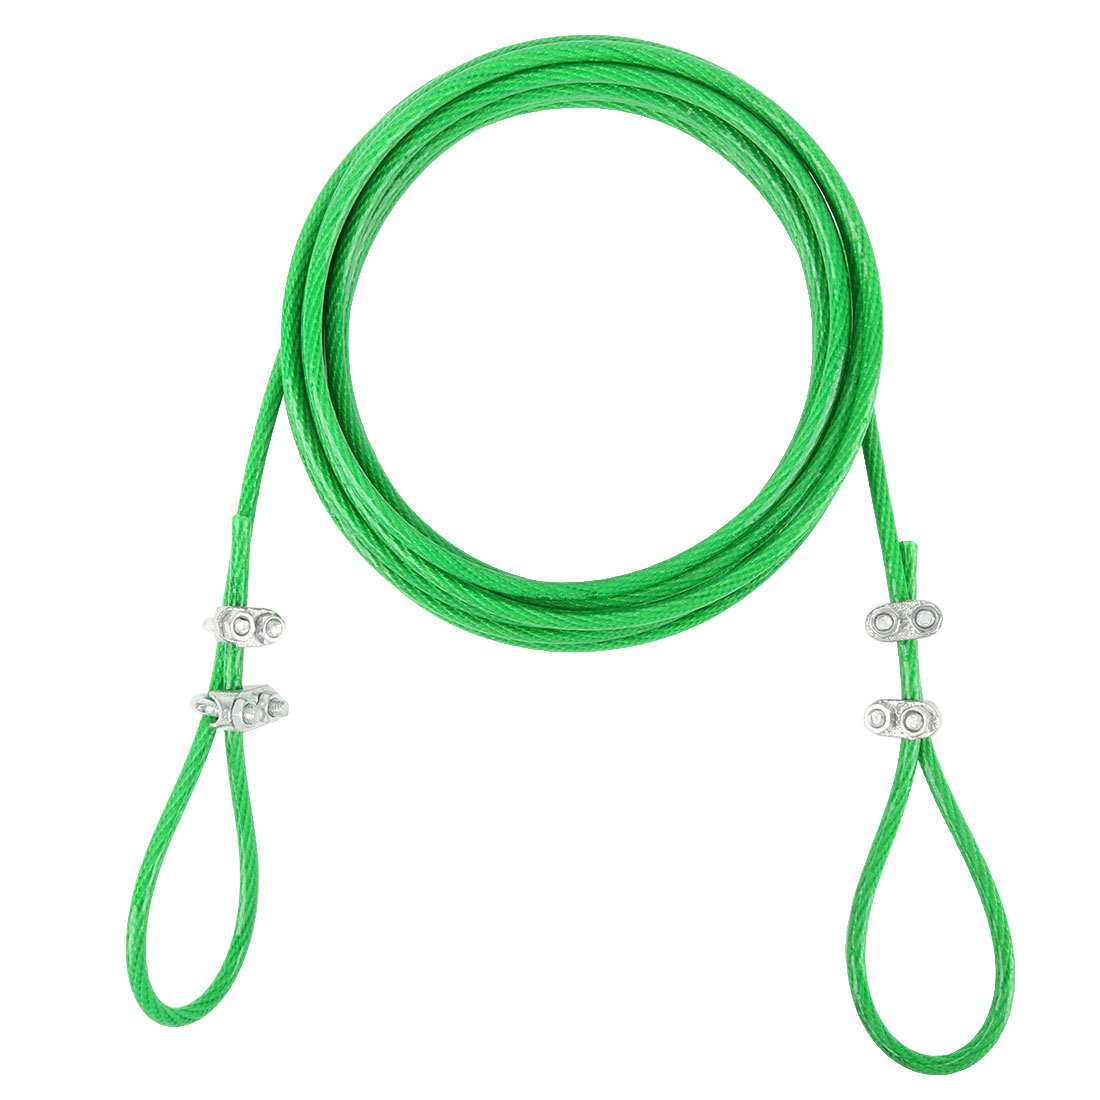 Steel Cored Clothesline Hold up Heavy Weight Nylon Wrapped Green 3 Meters Length